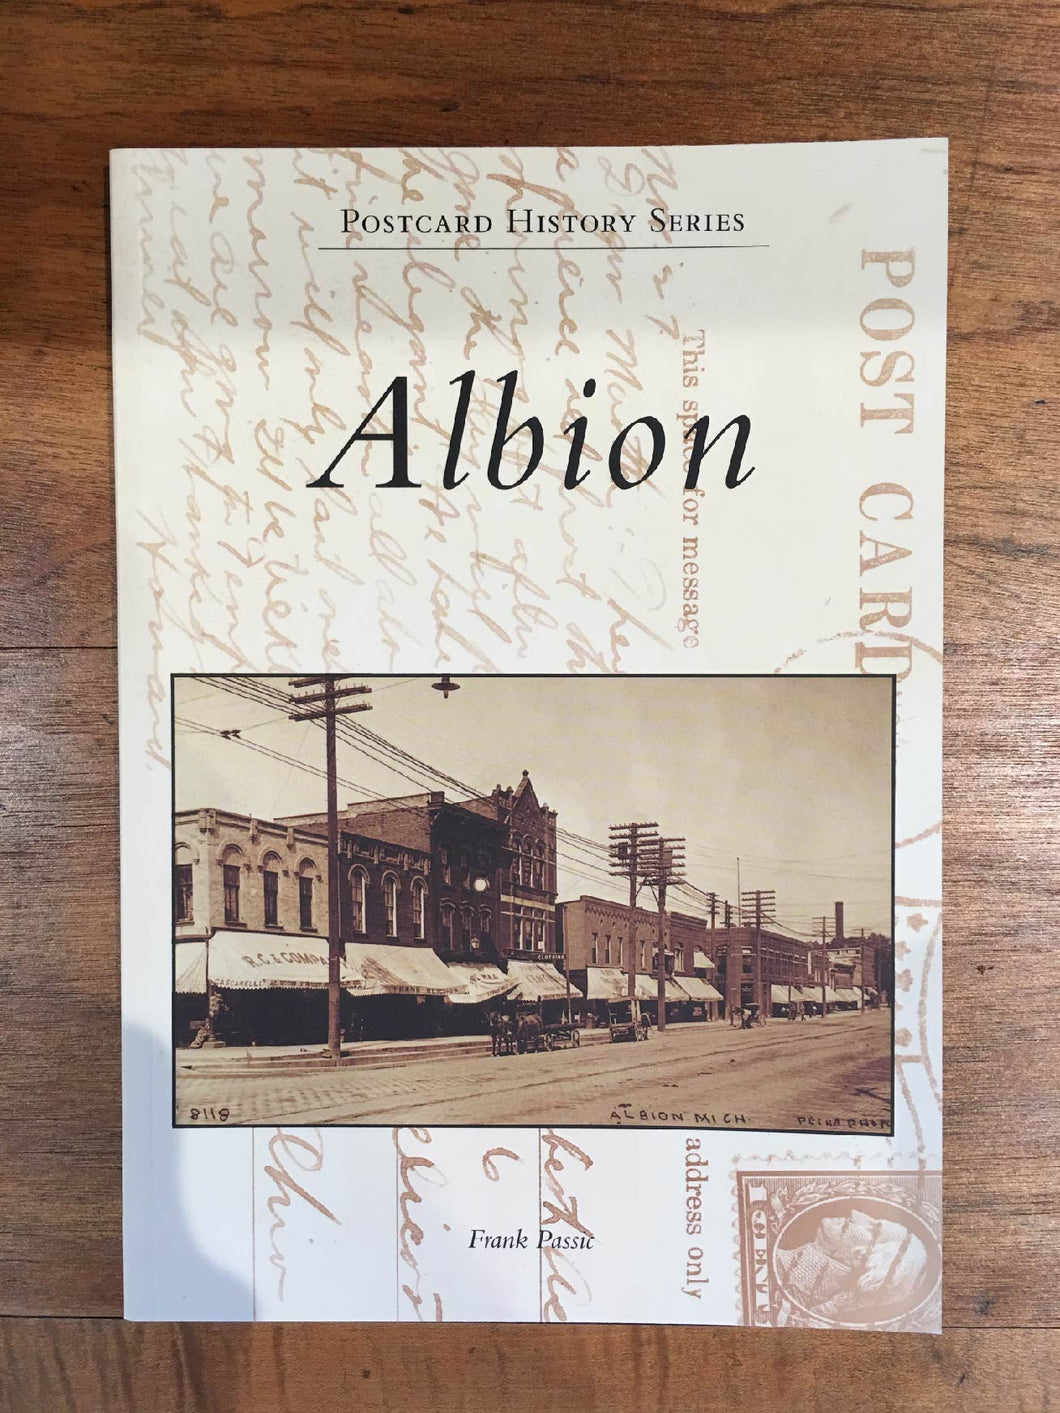 Albion - Postcard History Series by Frank Passic